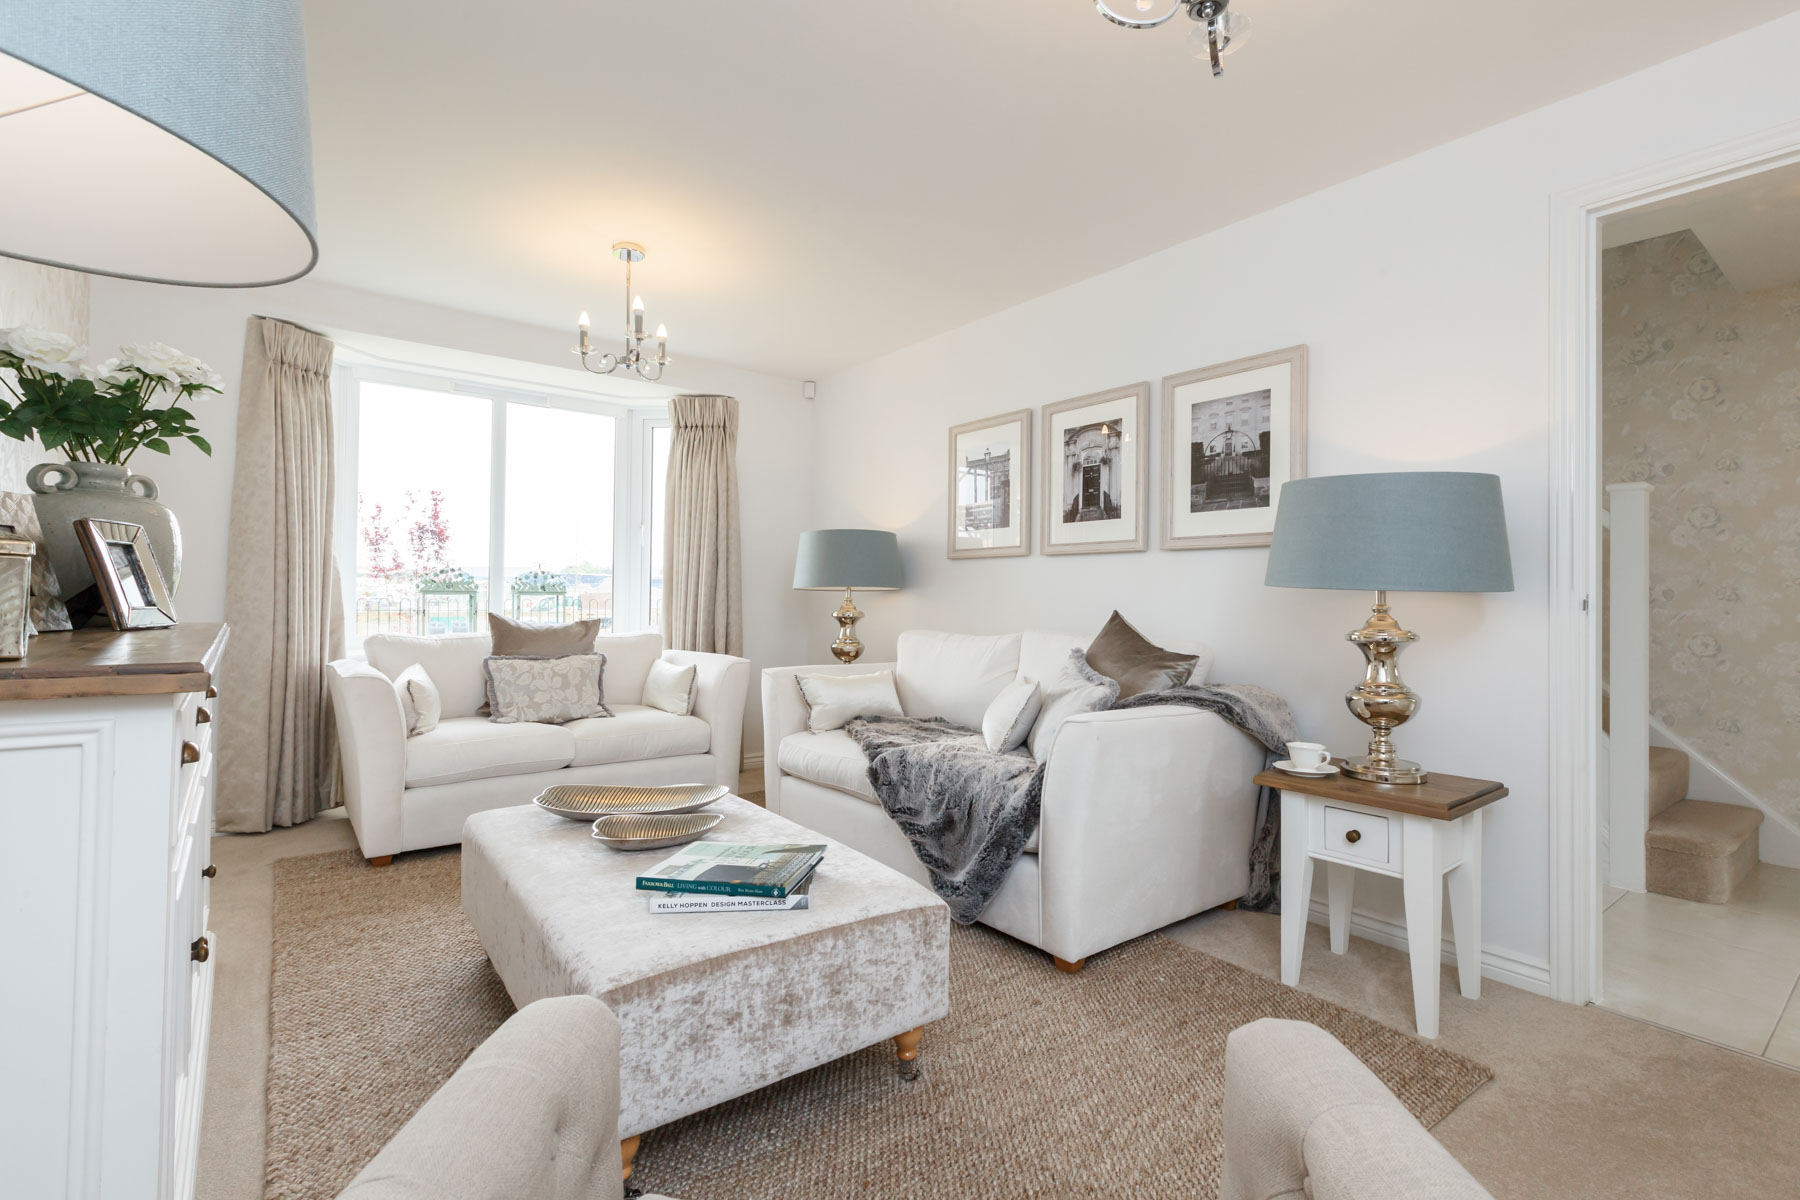 Burntwood Manor - Downham - Lounge 2